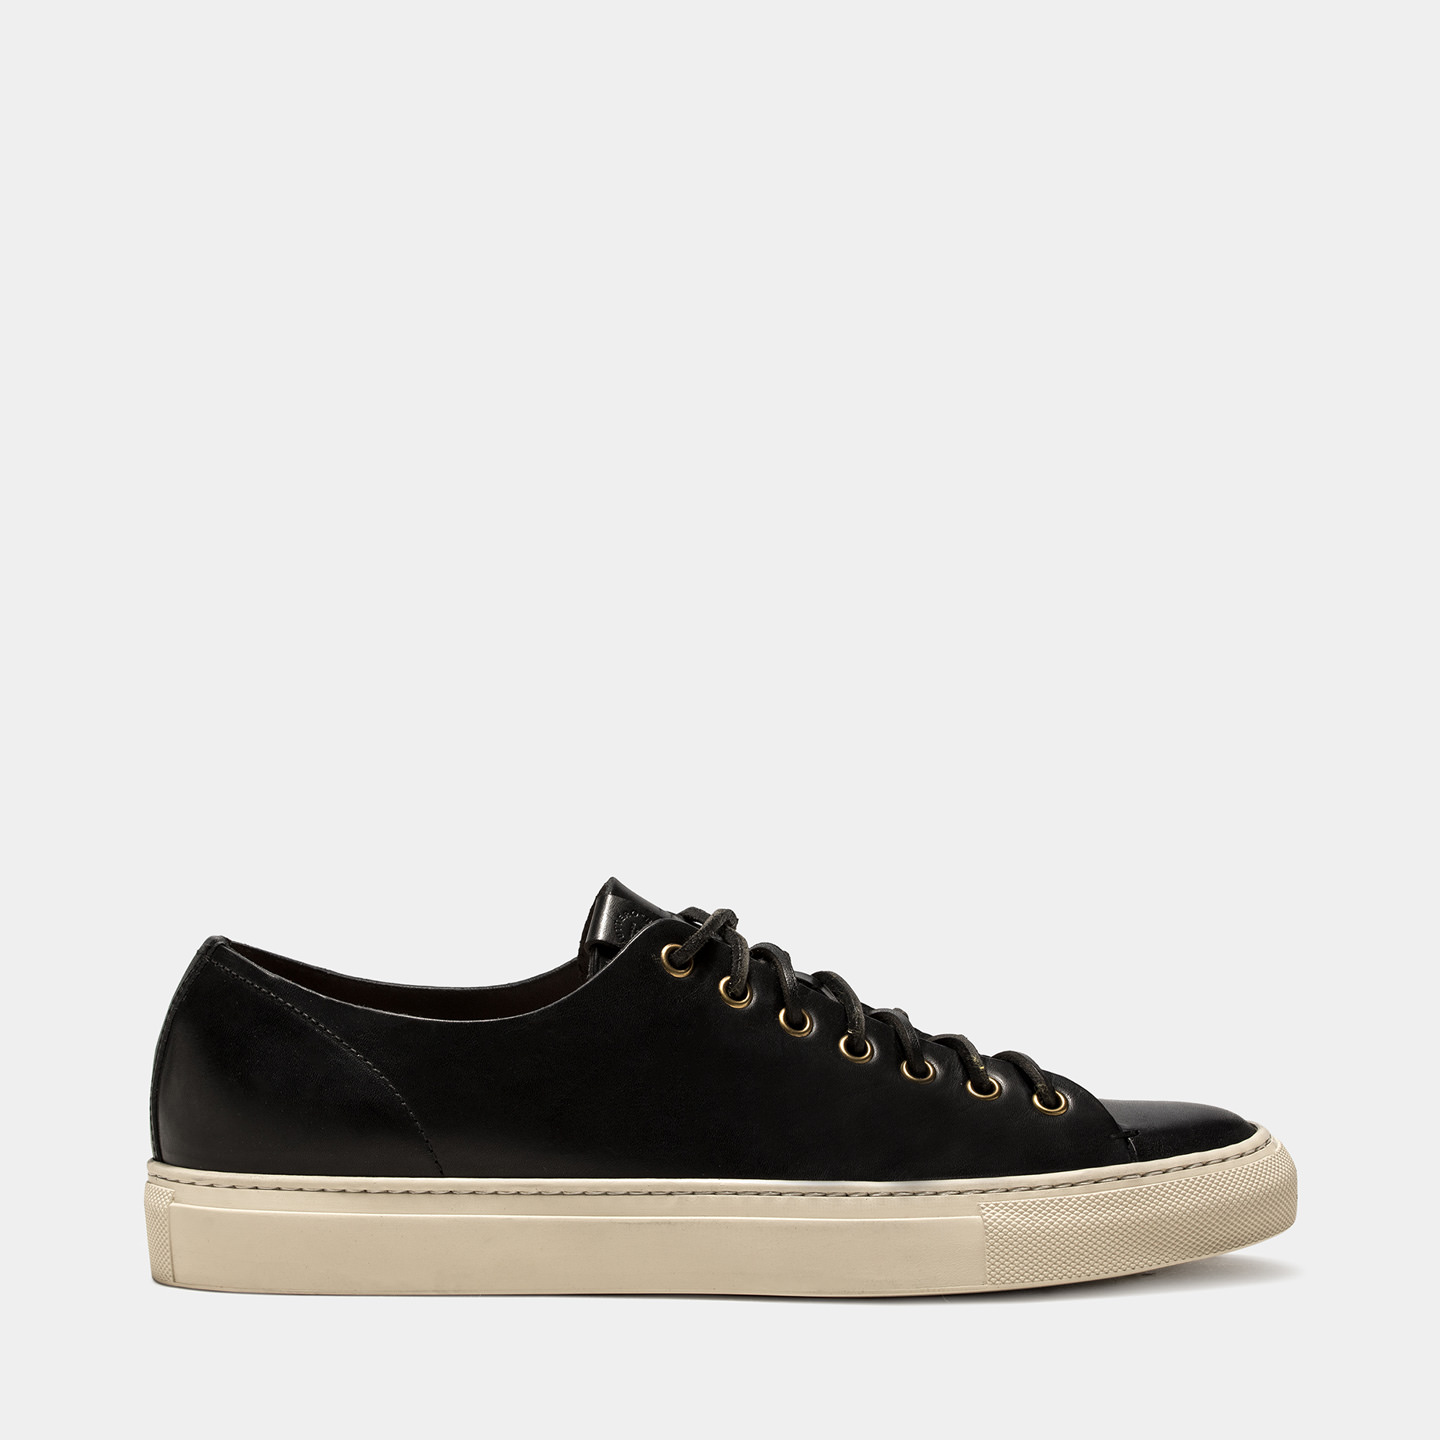 BUTTERO: BLACK LEATHER TANINO LOW SNEAKERS